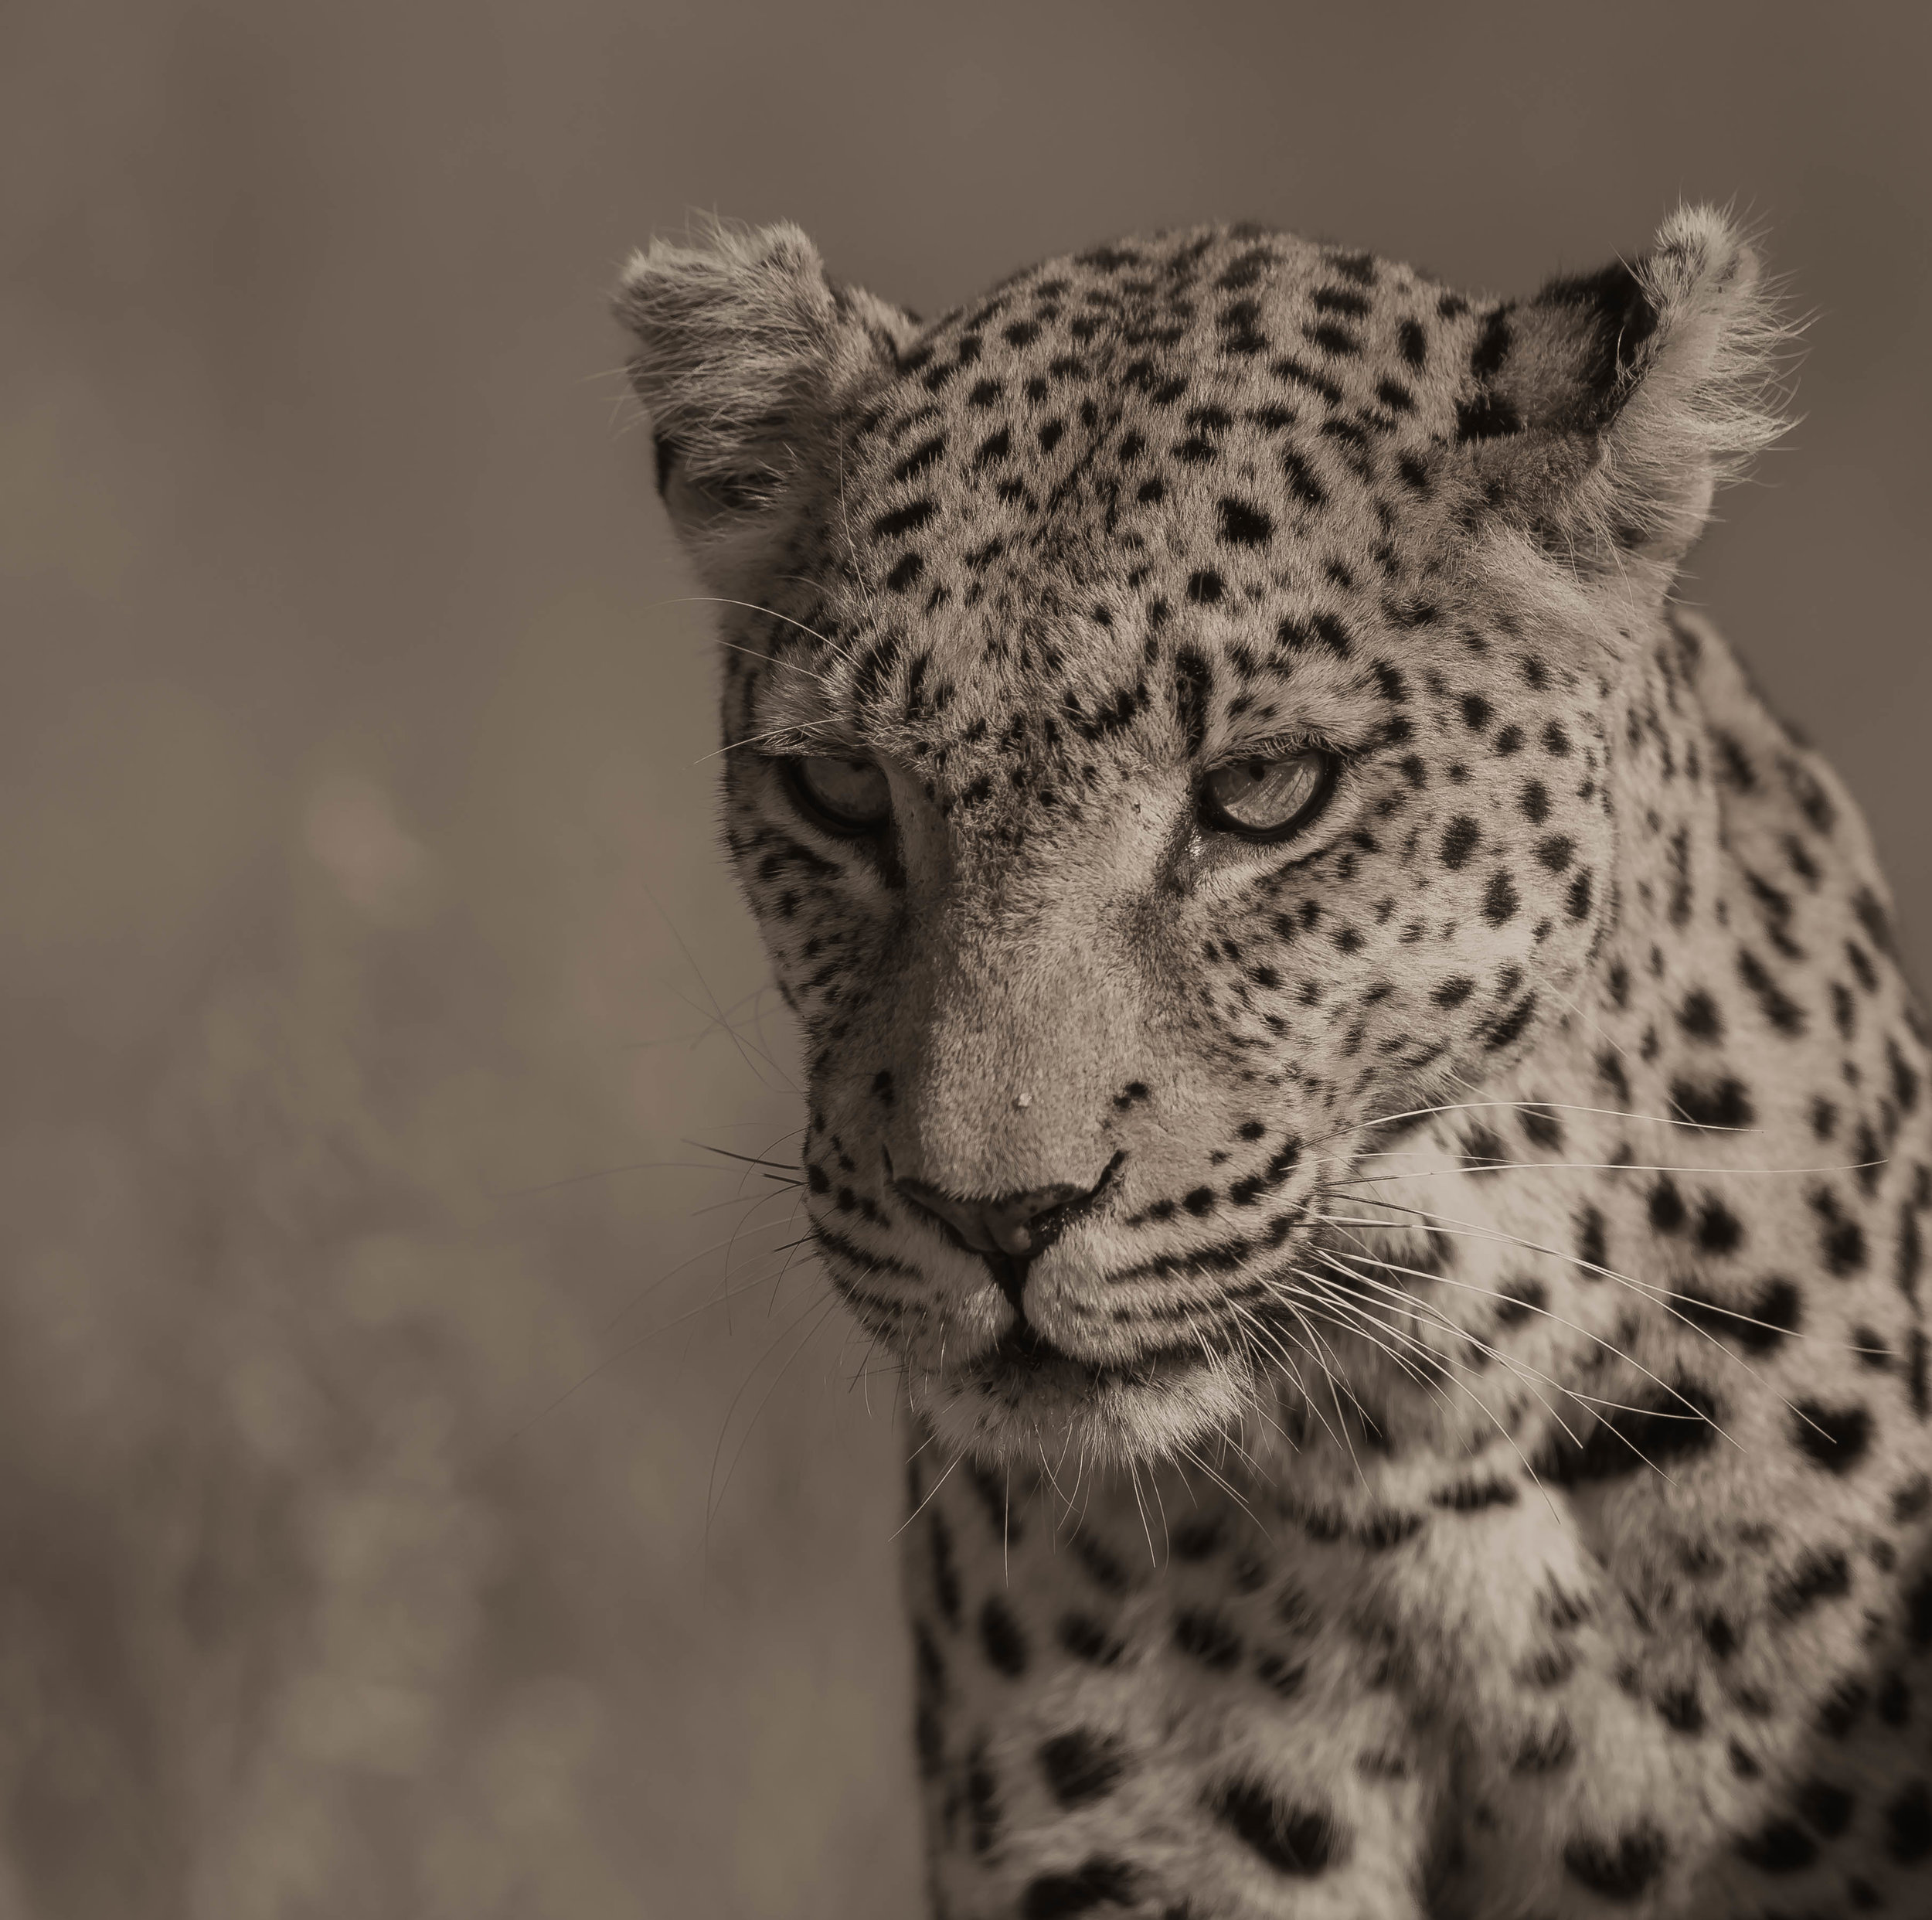 An aging Leopardess in the Okavango Delta